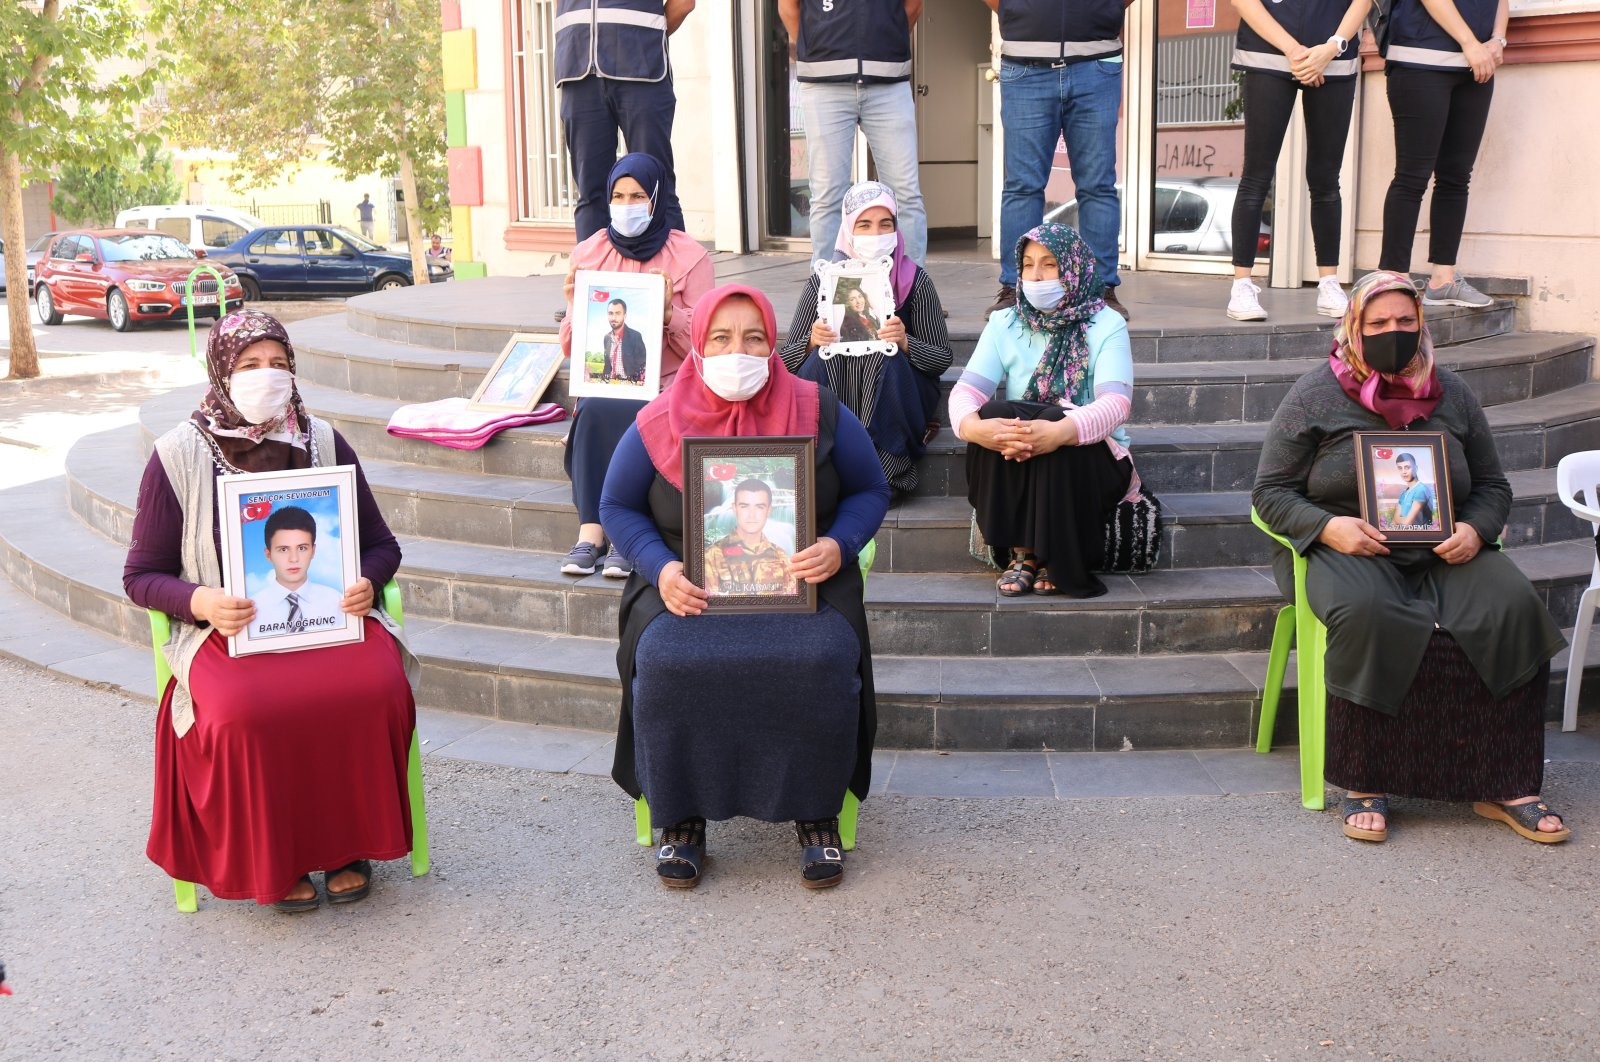 Families participate in the yearlong sit-in protest against the PKK terrorist group in front of the pro-PKK Peoples' Democratic Party's (HDP) headquarters in southeastern Turkey's Diyarbakır, Sept.16, 2020 (IHA Photo)